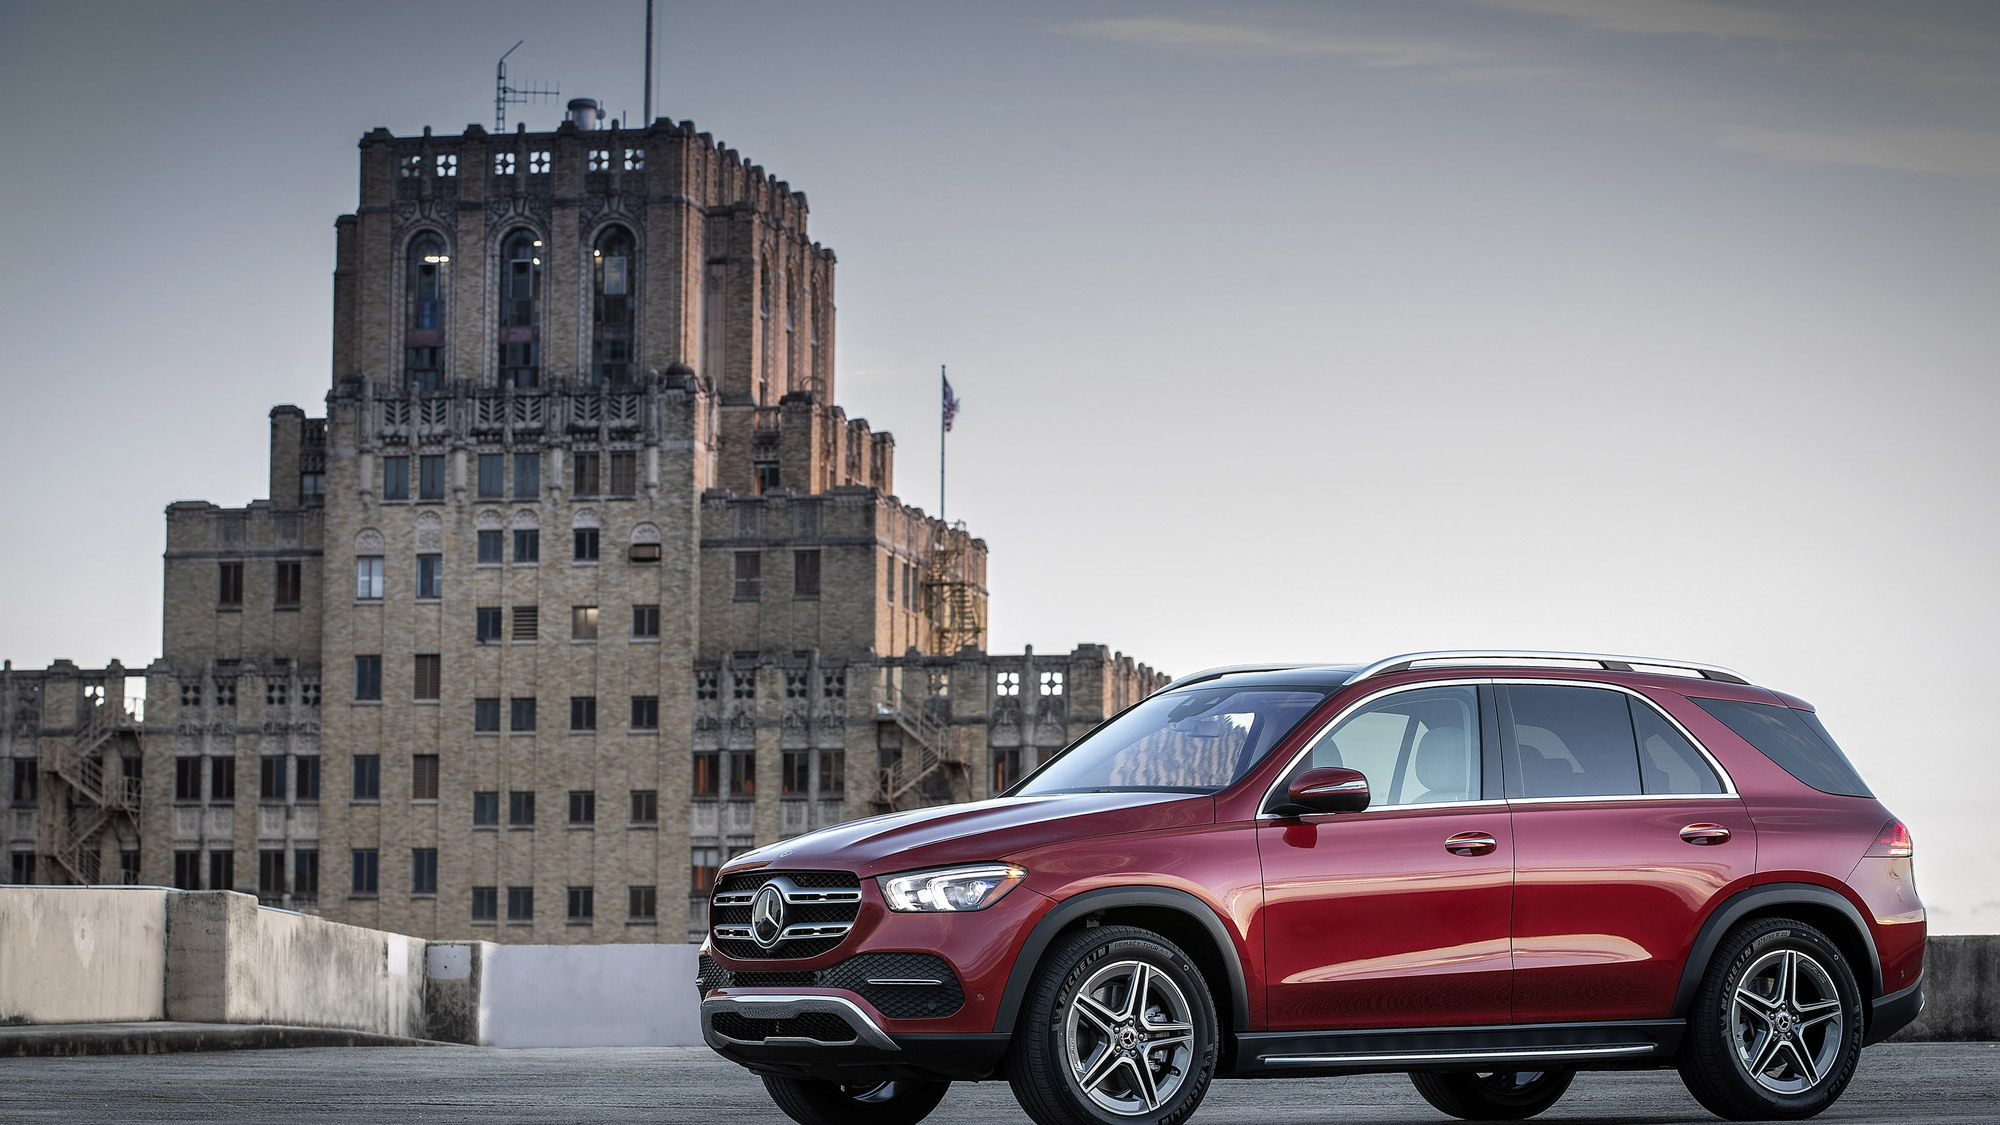 2020 Mercedes Benz Gle First Drive Review Outrunning Dinosaurs